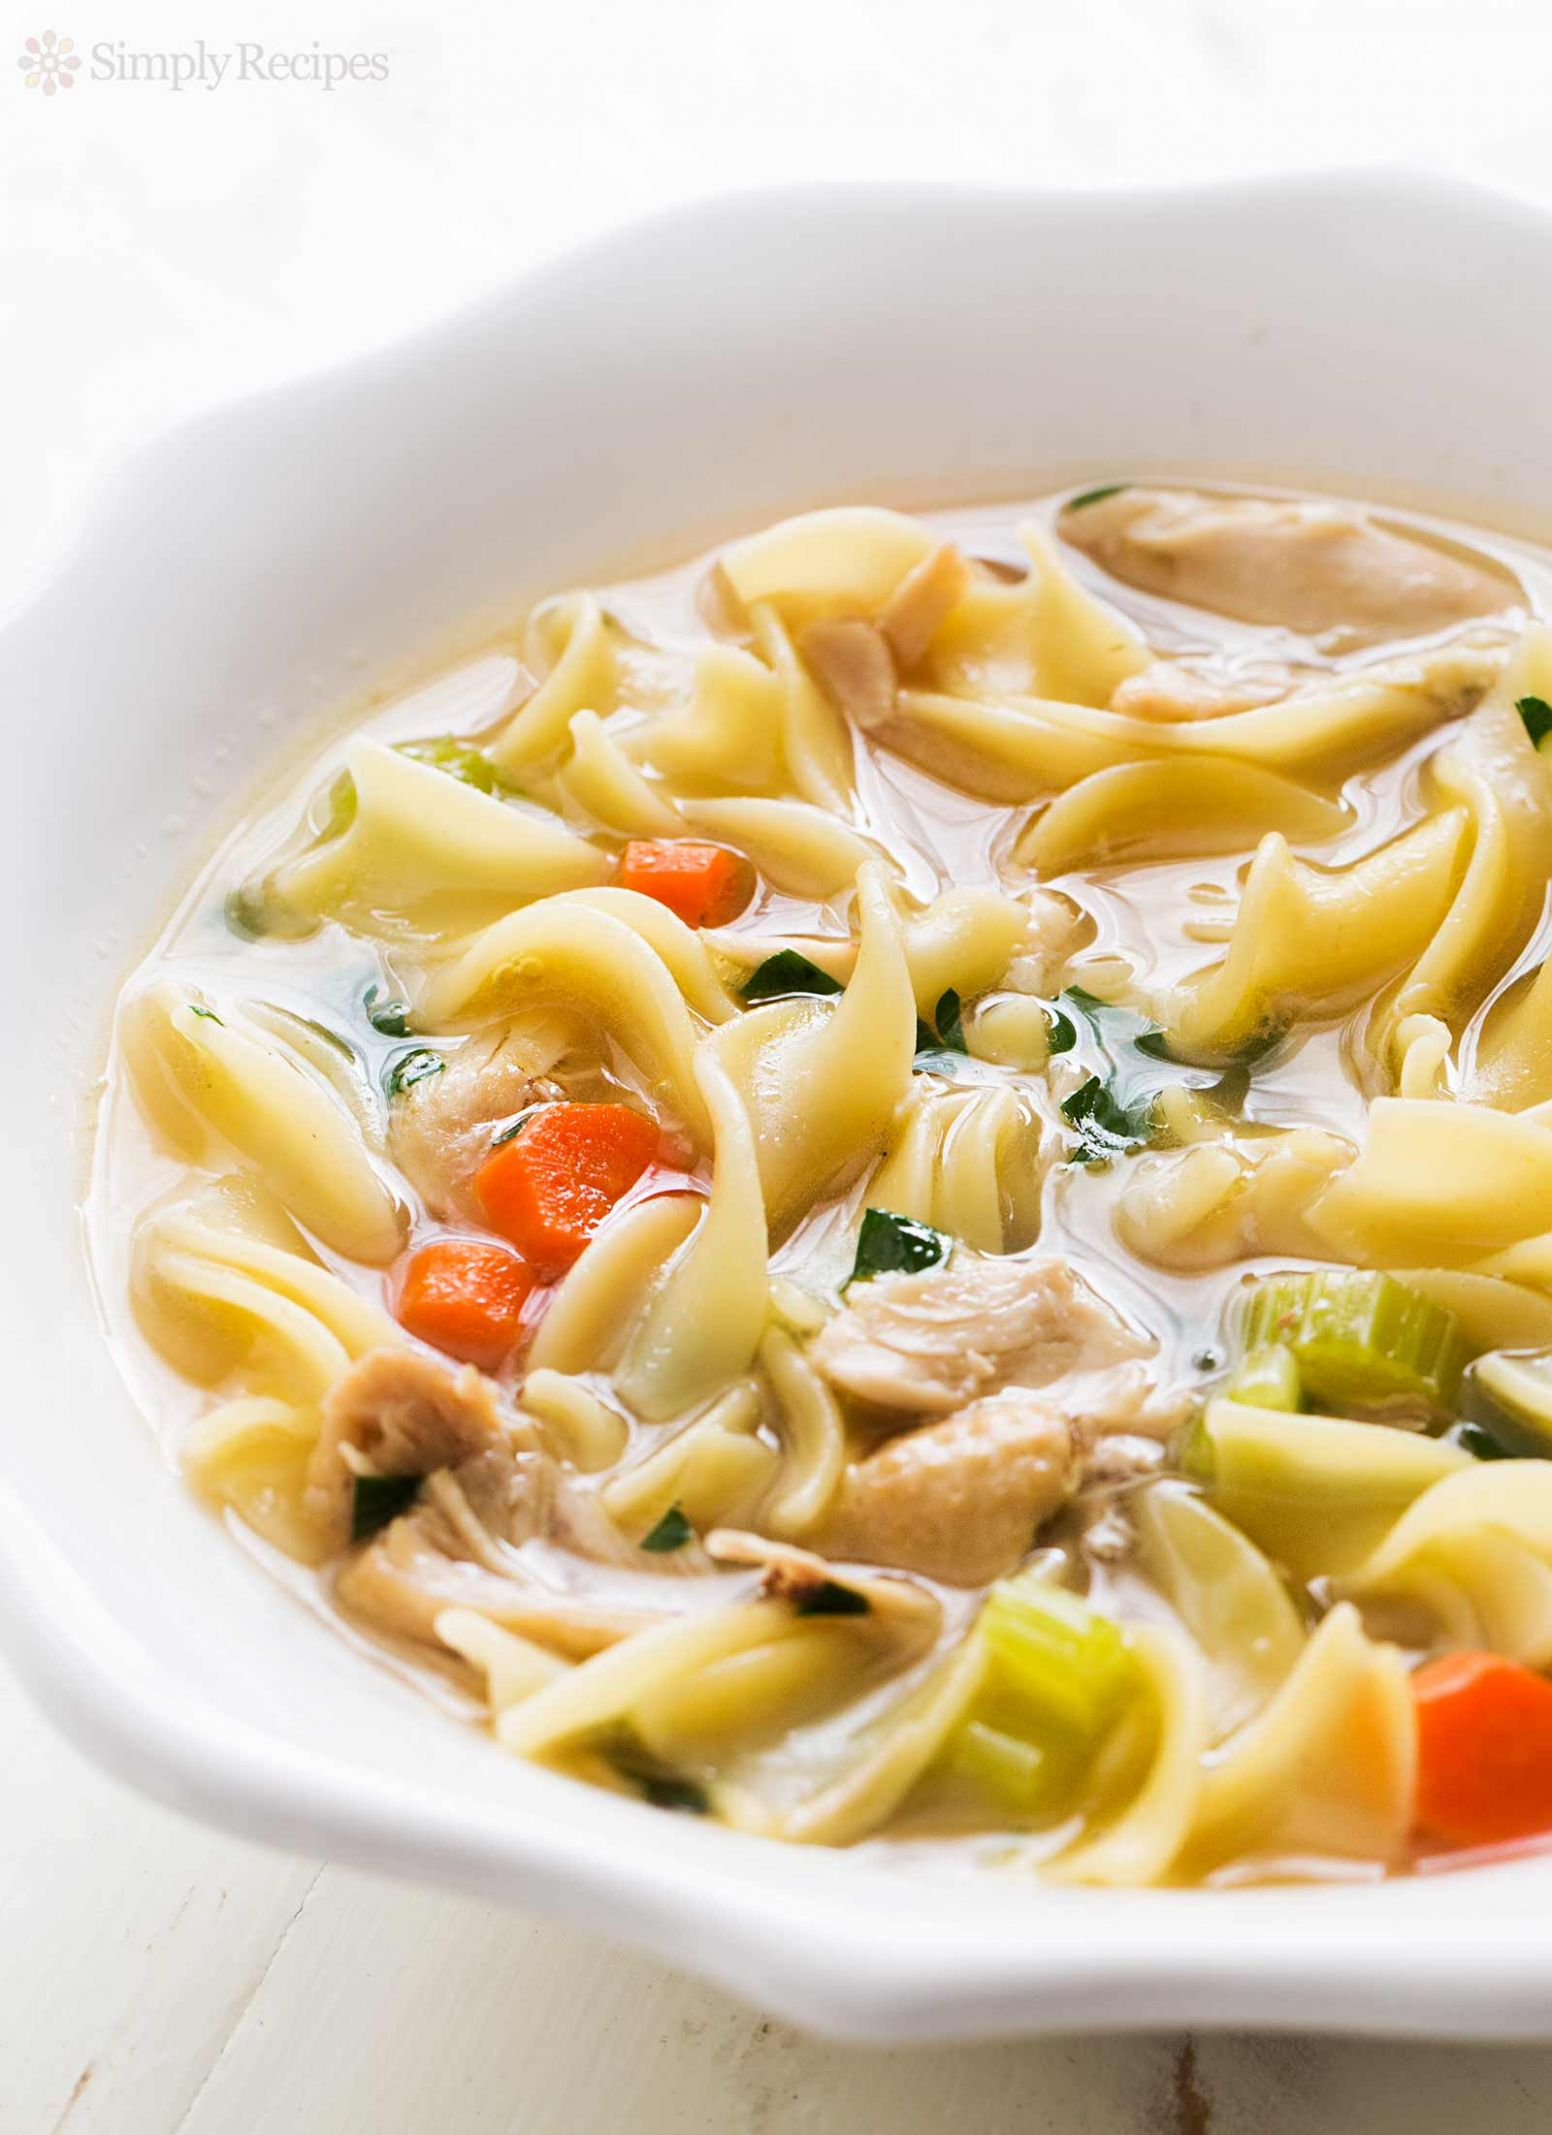 Homemade Chicken Noodle Soup - Recipes Chicken Noodle Soup Homemade